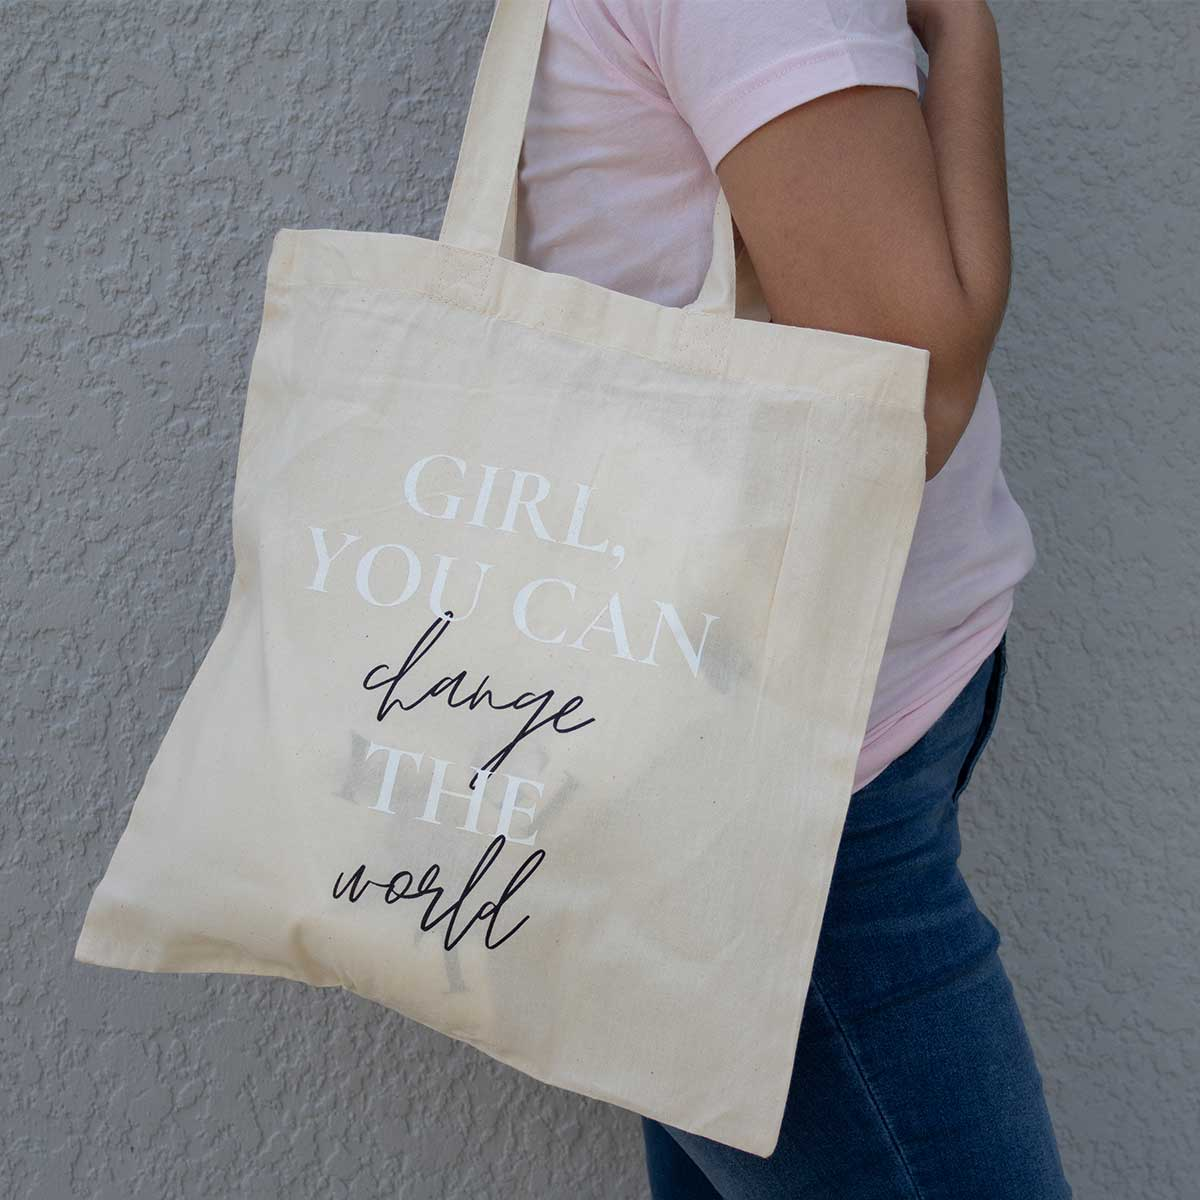 """Tote bag for sale that reads """"Girl... you can change the world"""""""